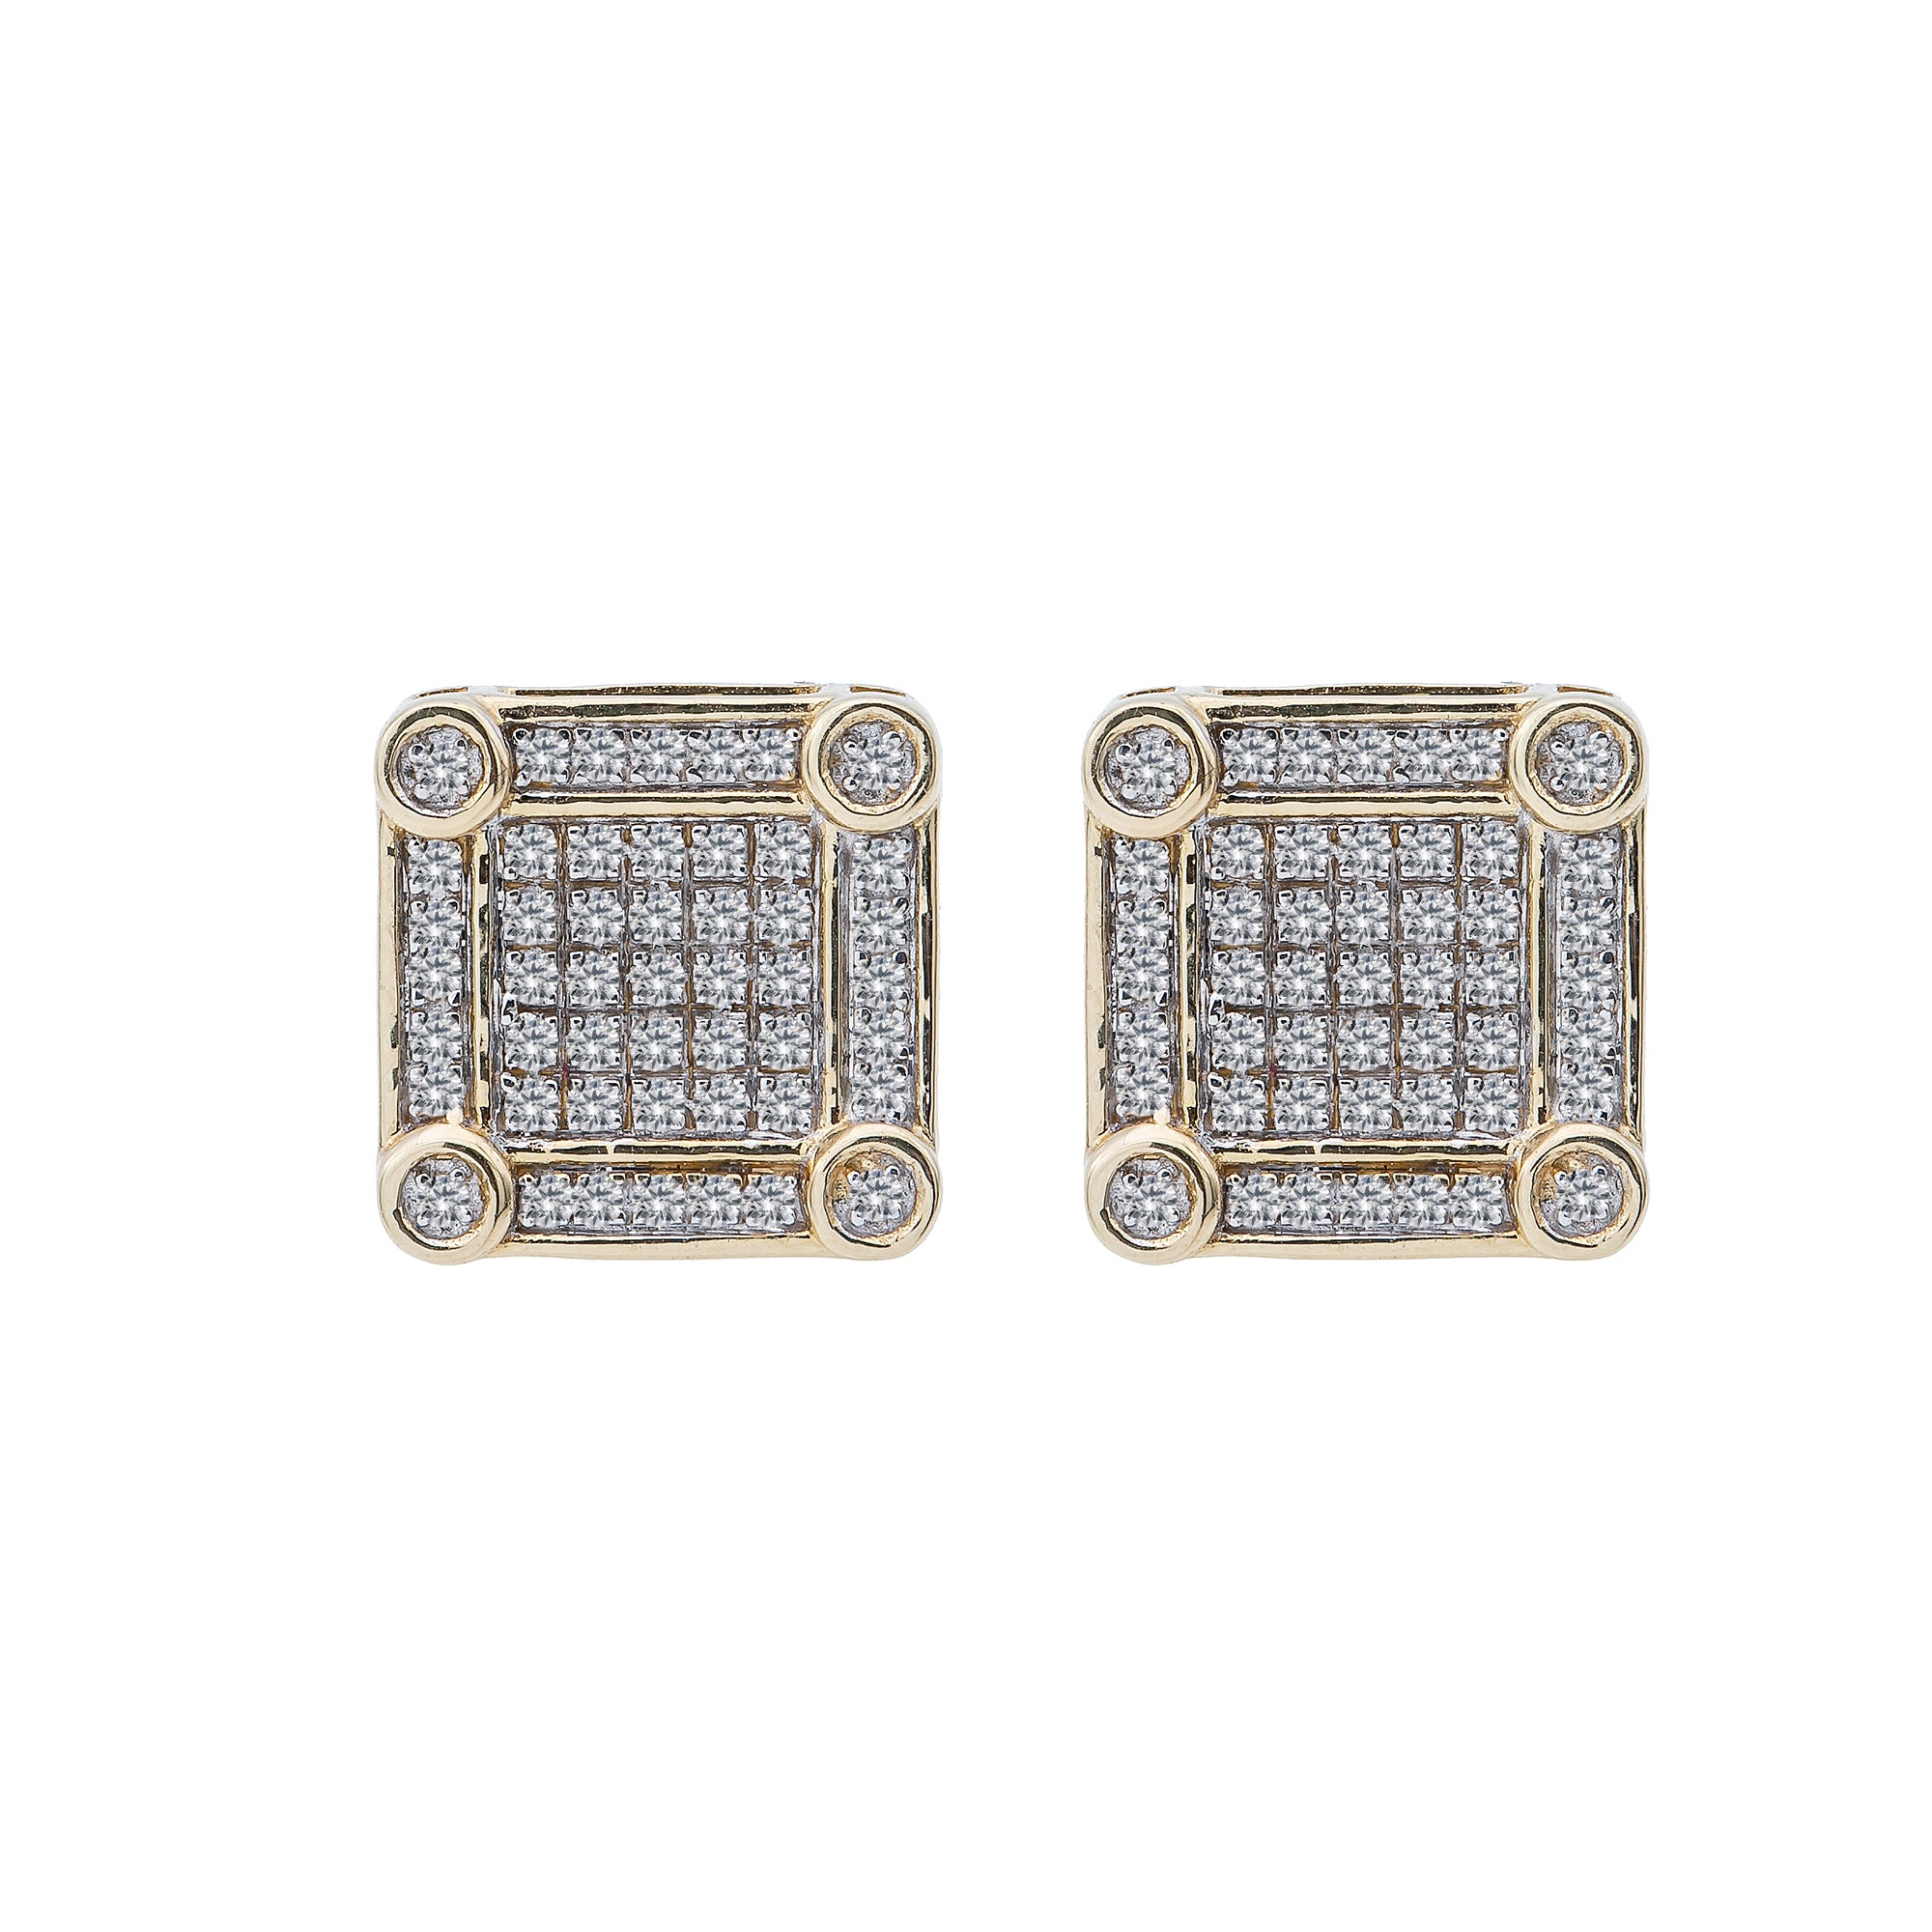 14K Yellow Gold Unisex Earrings with 0.49 CT Diamond